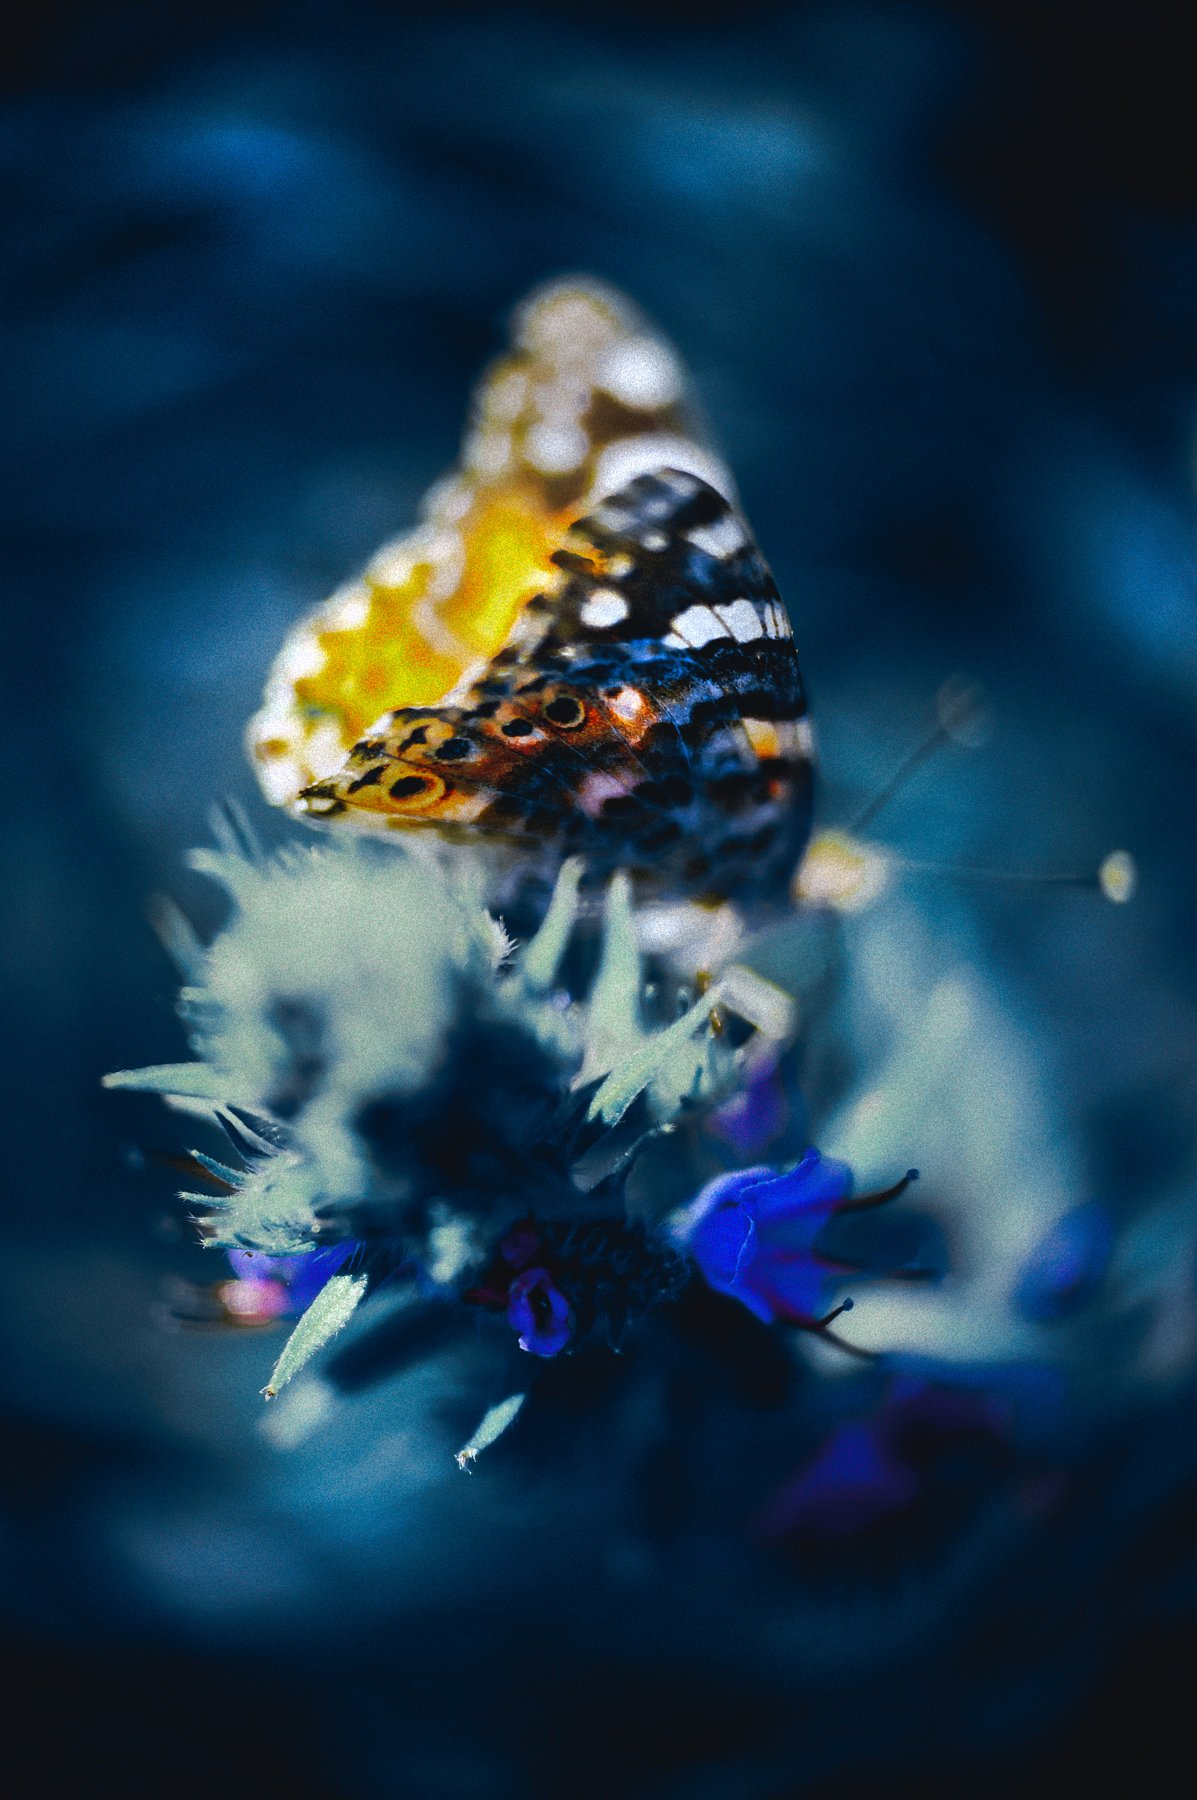 marco, butterfly, bokeh, nature, colors, Руслан Болгов (Axe)